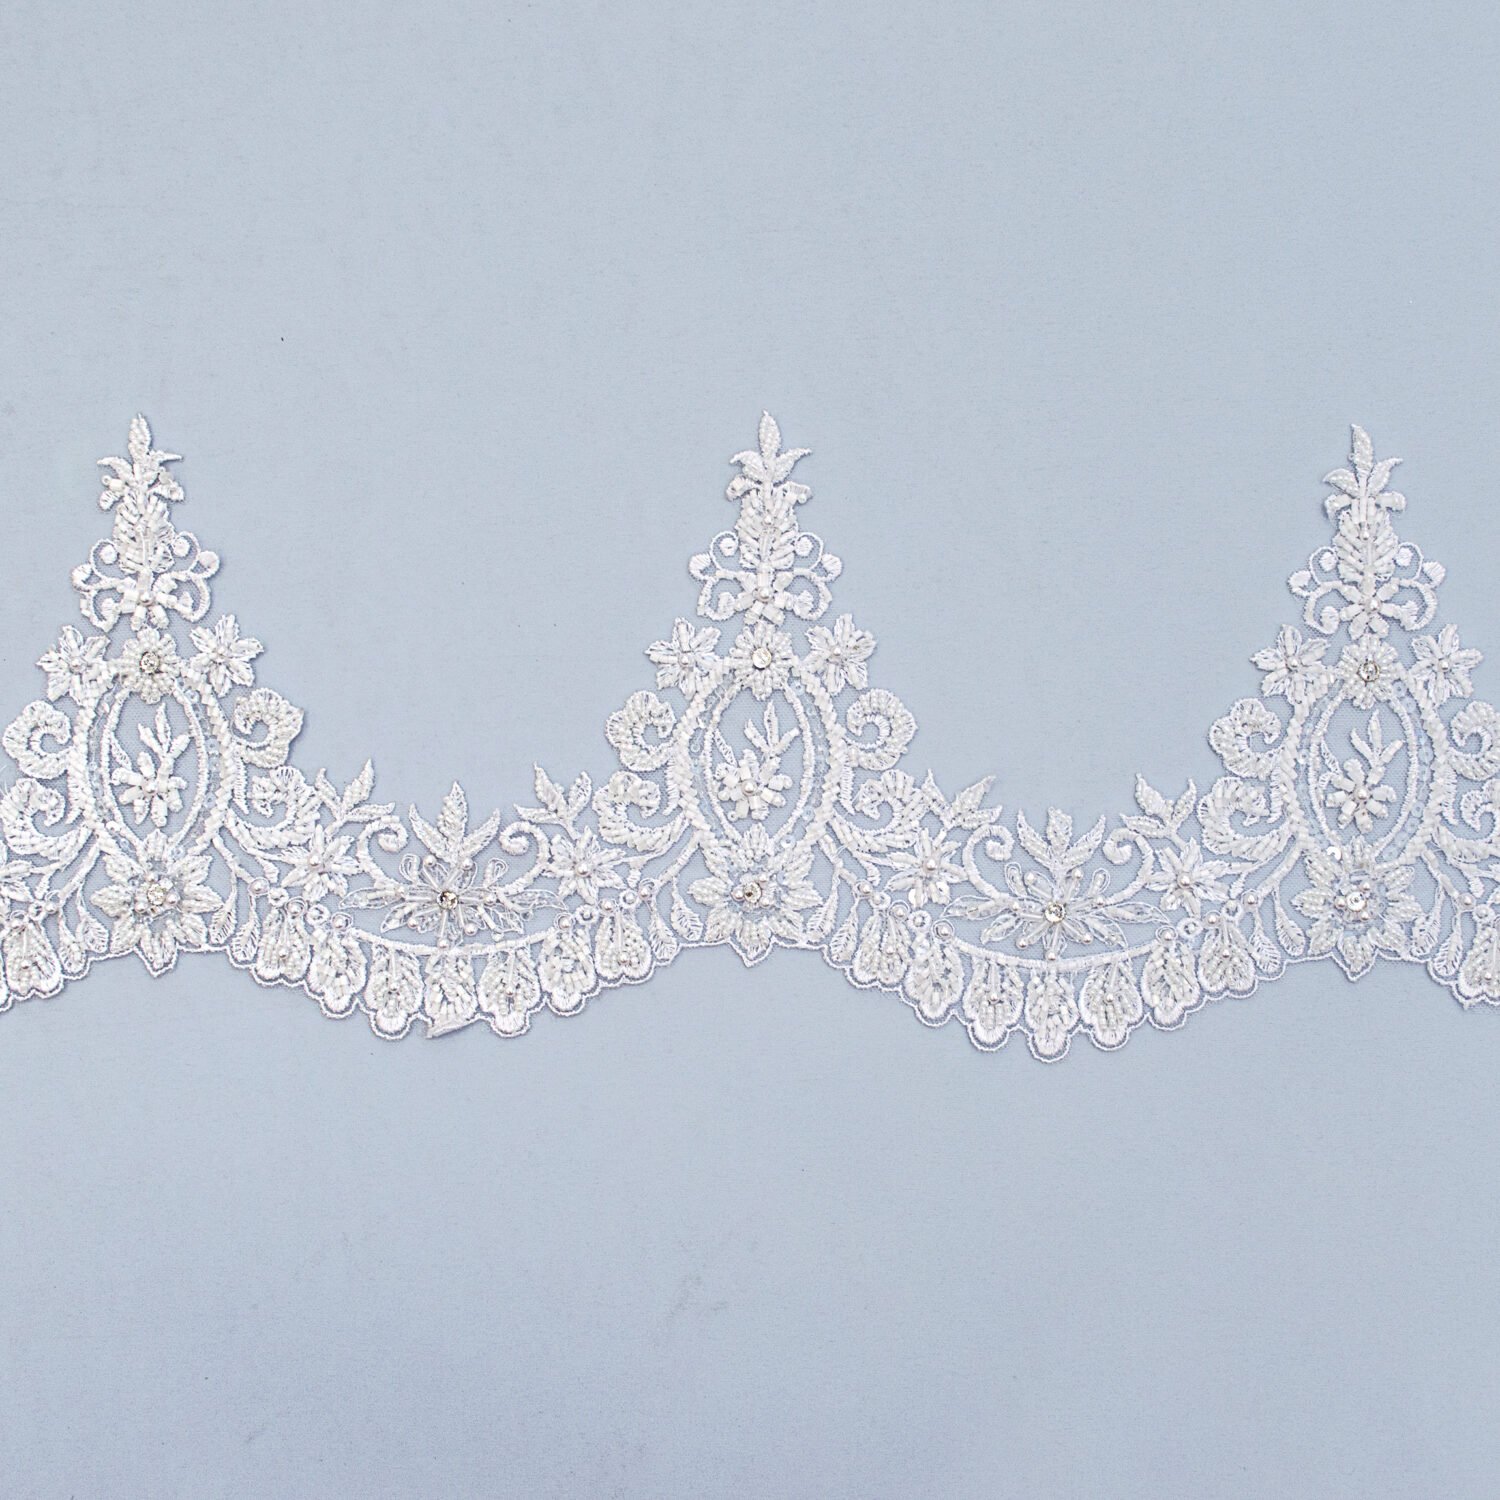 Embroidered lace trim AM13146F2B-1-N99